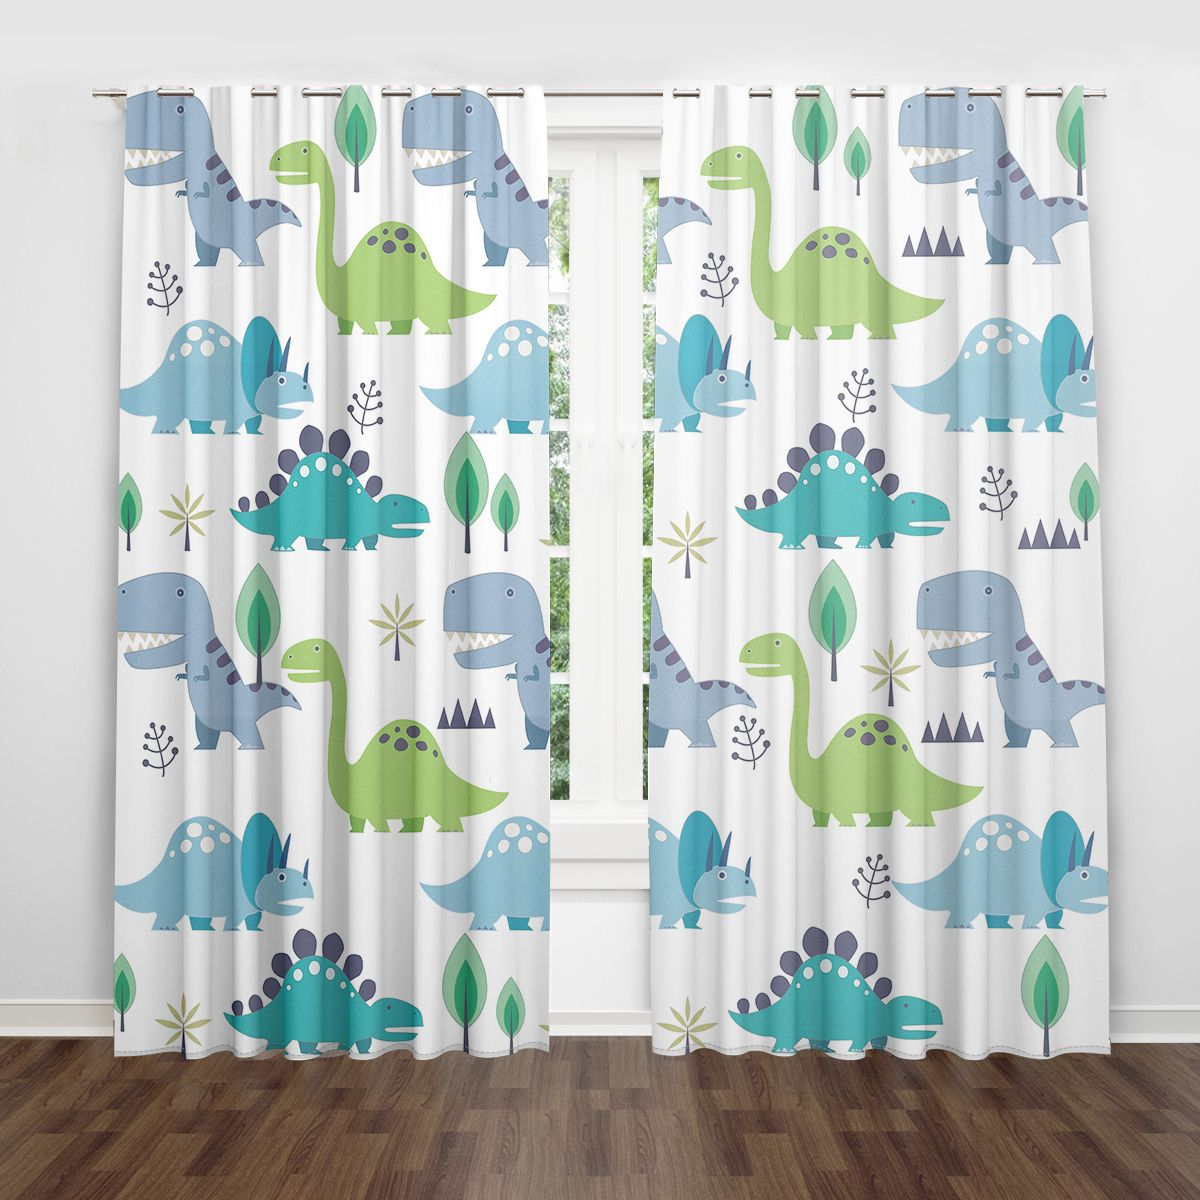 Cartoon Dinosaur Cute Kids Room Nursery Curtains Lovely Children Kids Room Curtains Nursery Curtains Kids Curtains